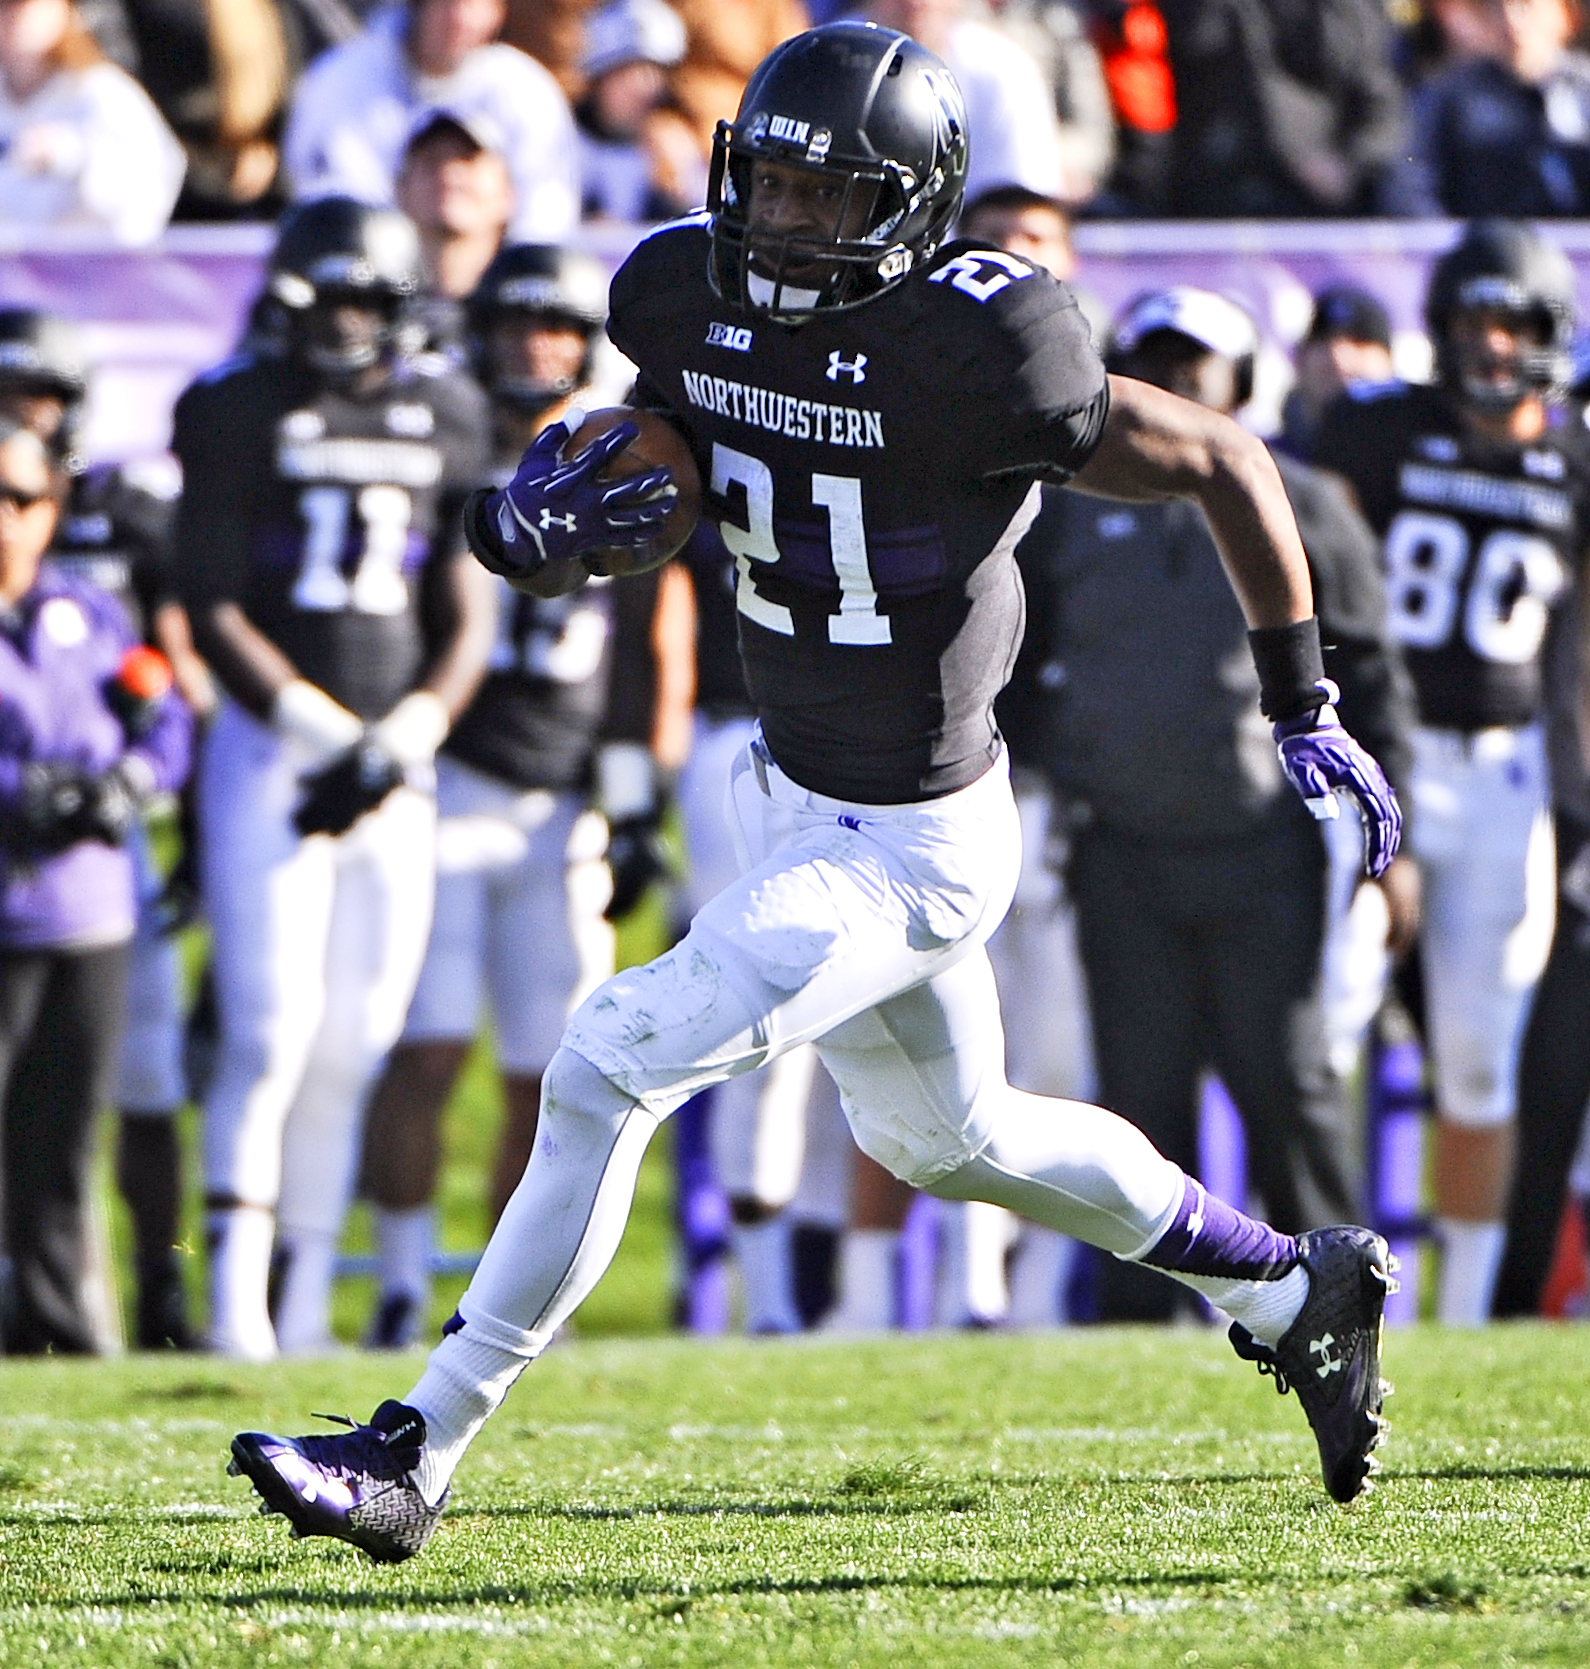 Northwestern running back Justin Jackson (21) runs against Penn State during the second half of an NCAA college football game in Evanston, Ill.,  Saturday, Nov. 7, 2015. (AP Photo/Matt Marton)